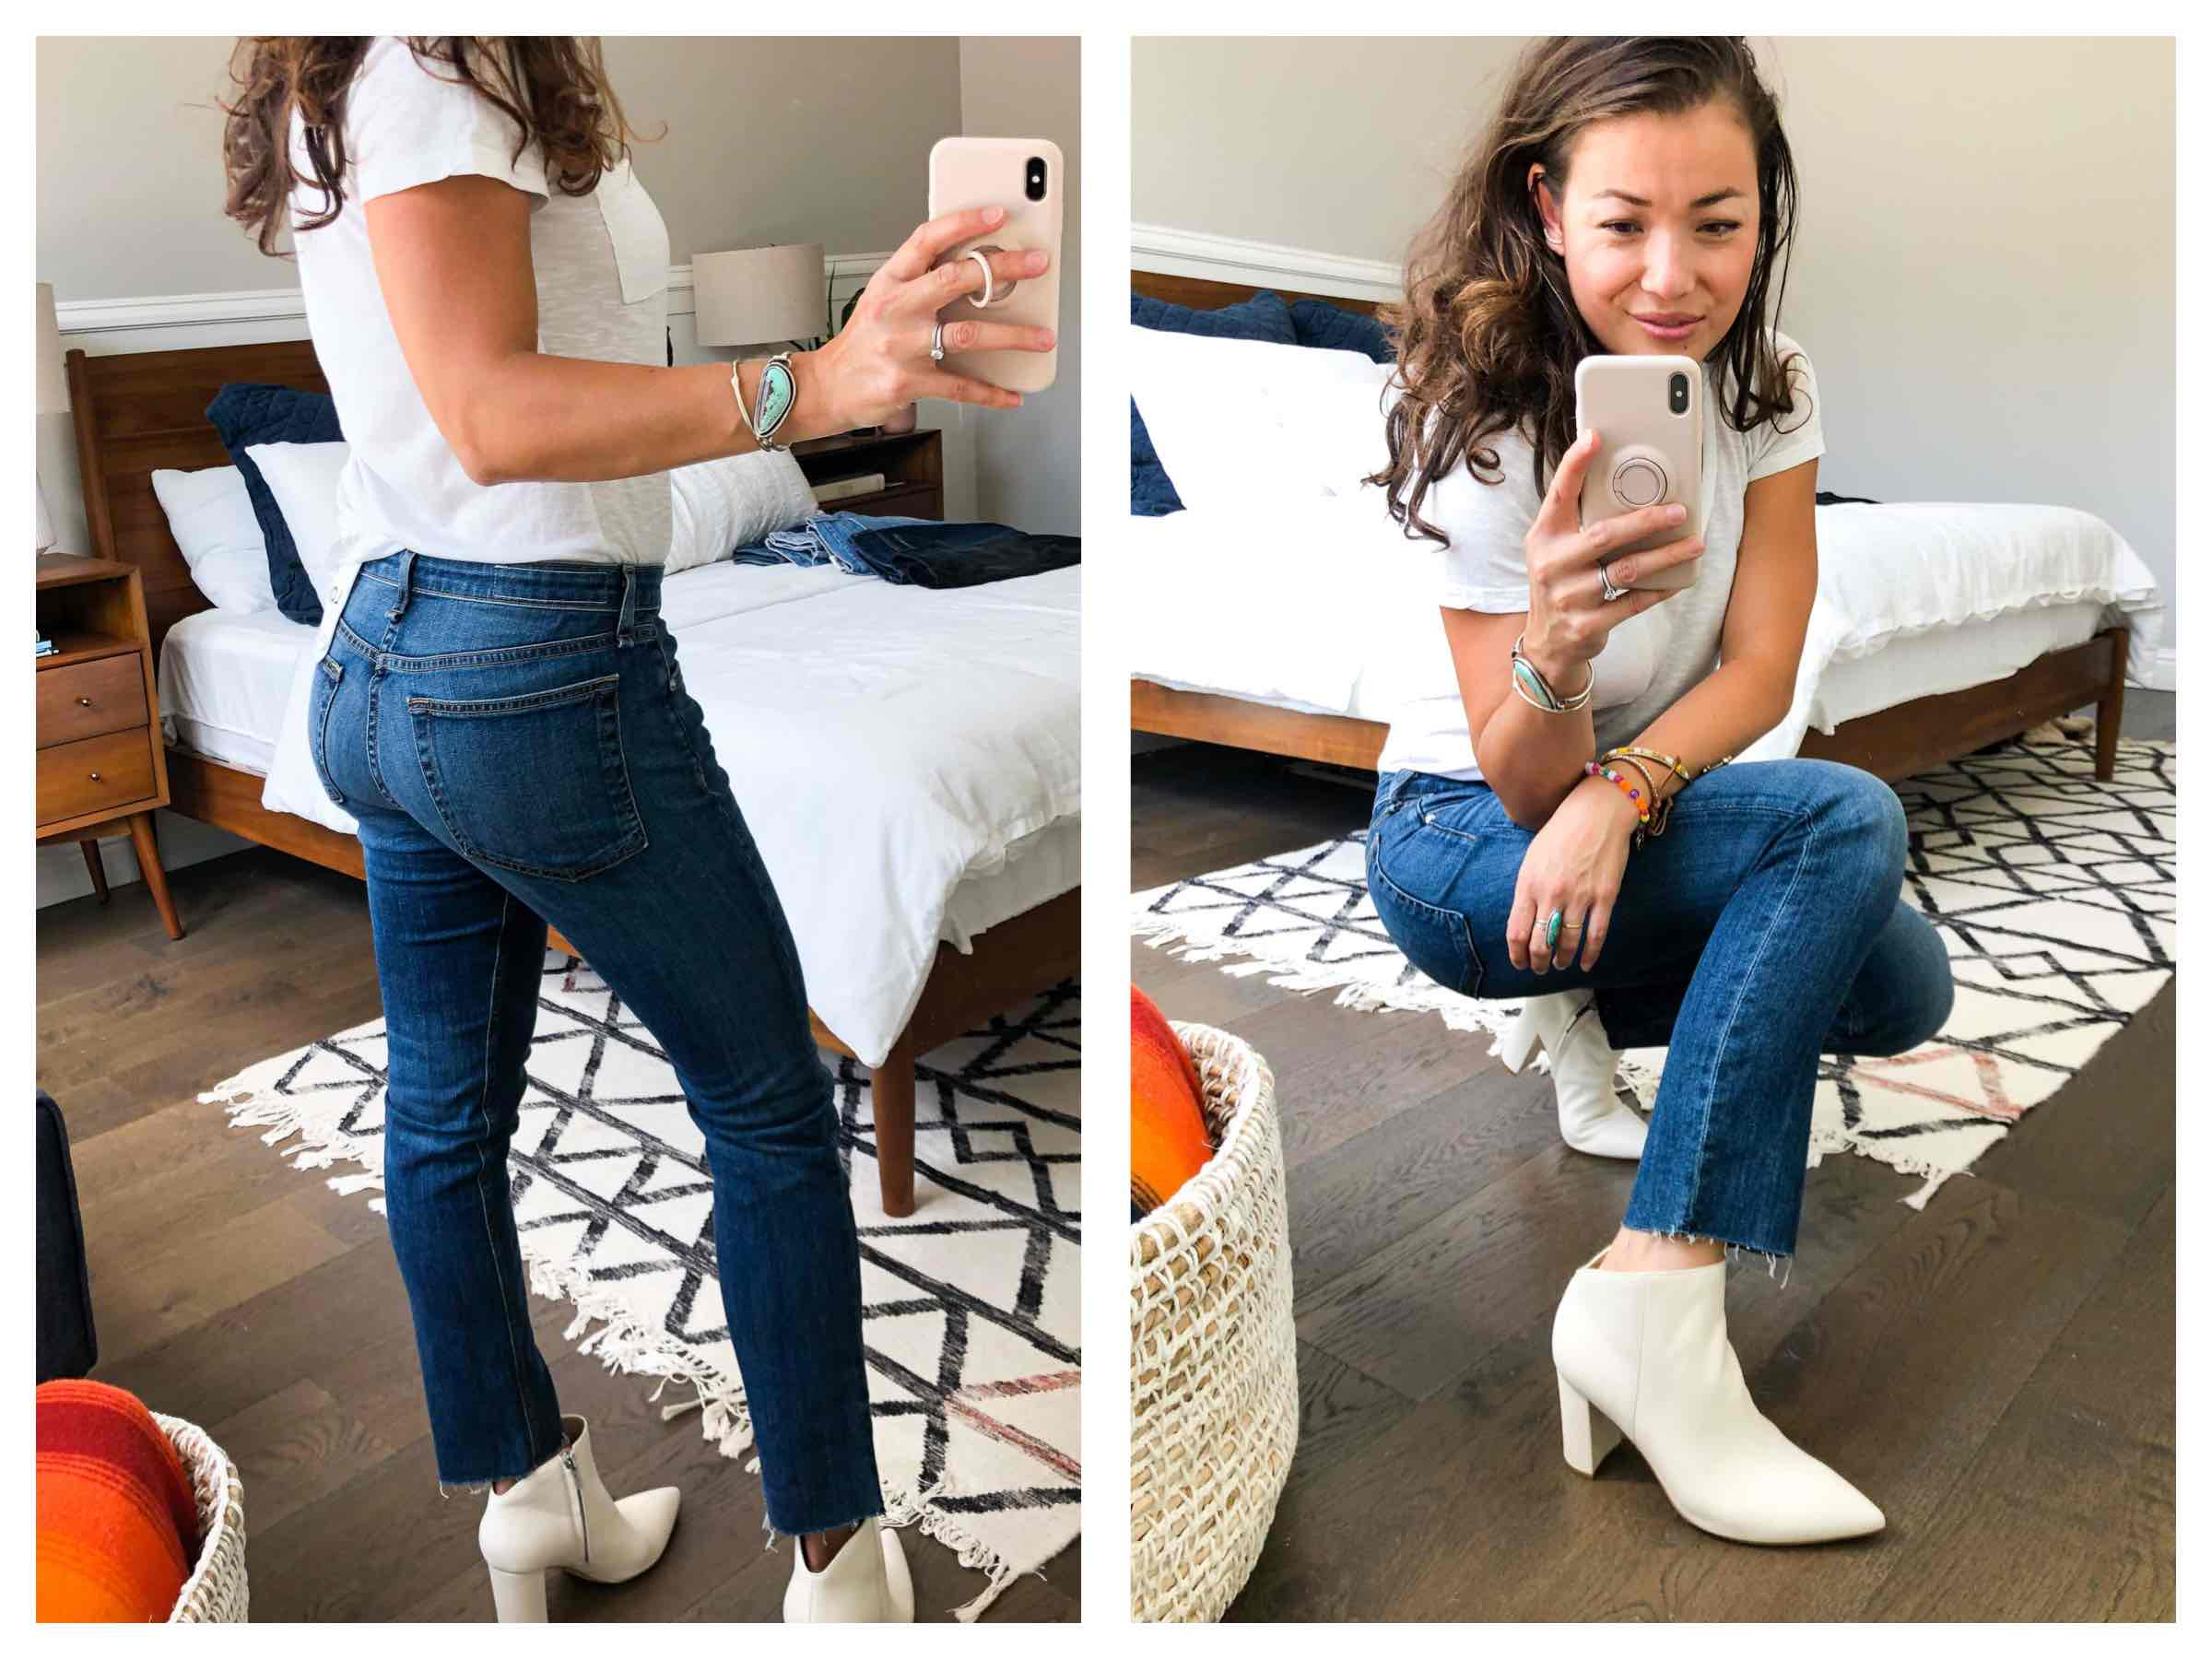 m tried & reviewed 6 pairs of jeans in the Nordstrom Anniversary Sale. Levi's 501s, rag & bone, Good American...see her Early Access faves.